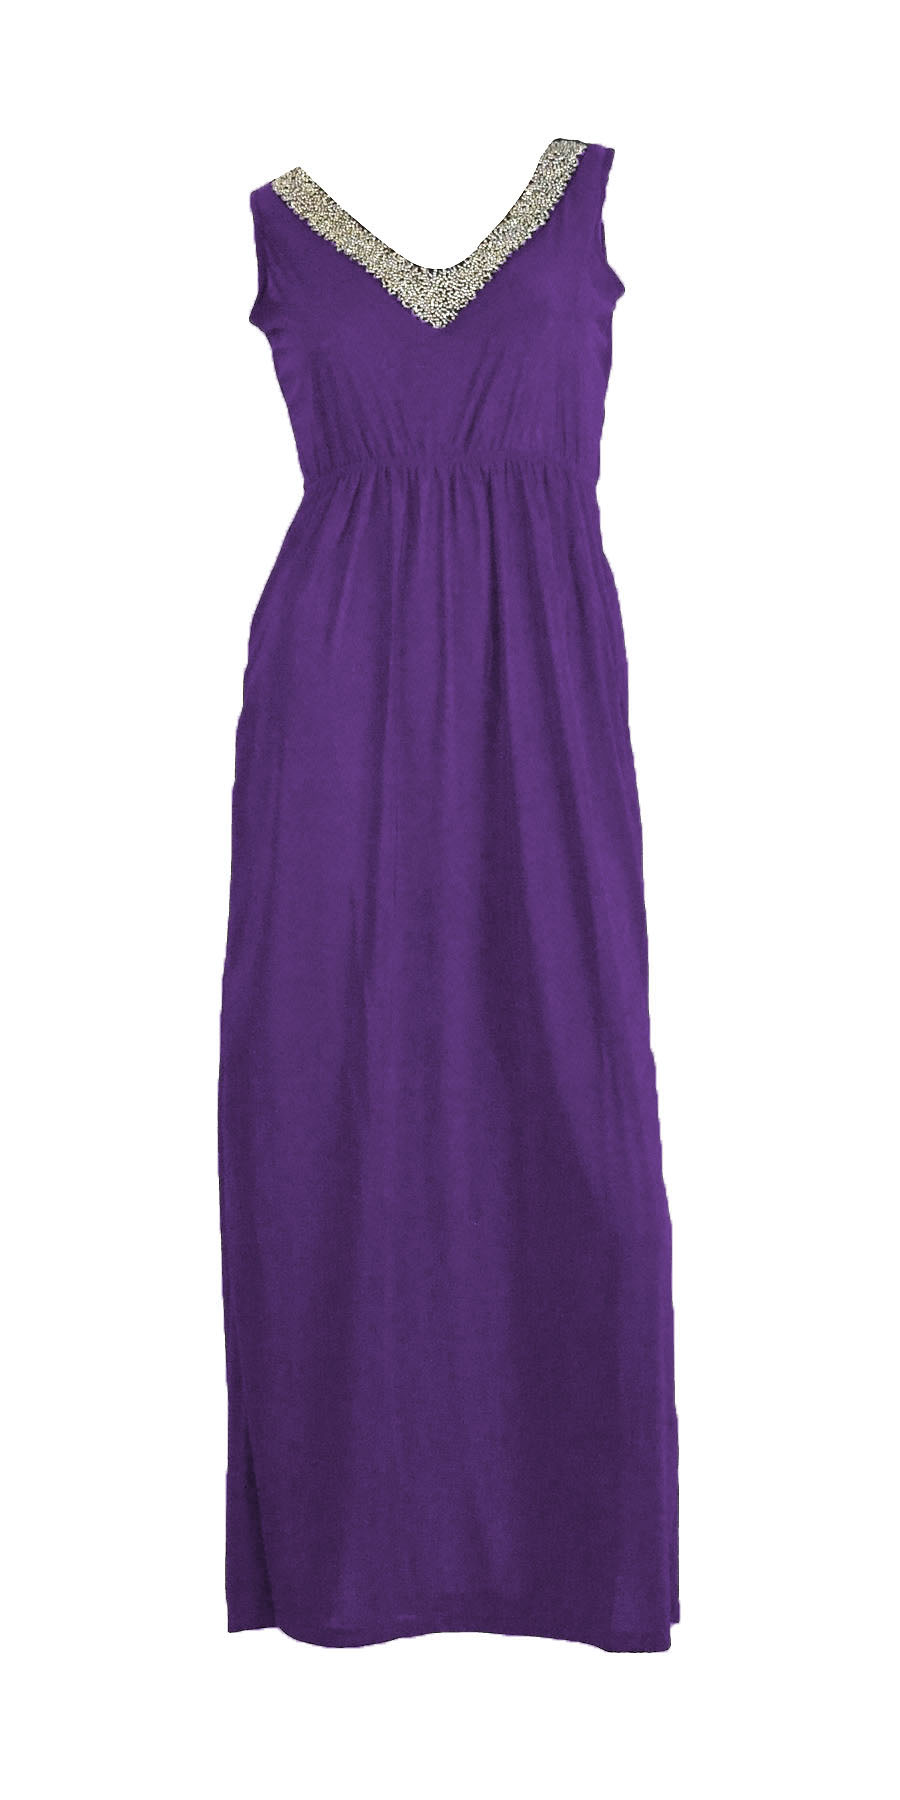 Belle Donne- Womenâ€TMs Maxi Dress Sleeveless Halter Top Solid Colors Long Dress - Purple